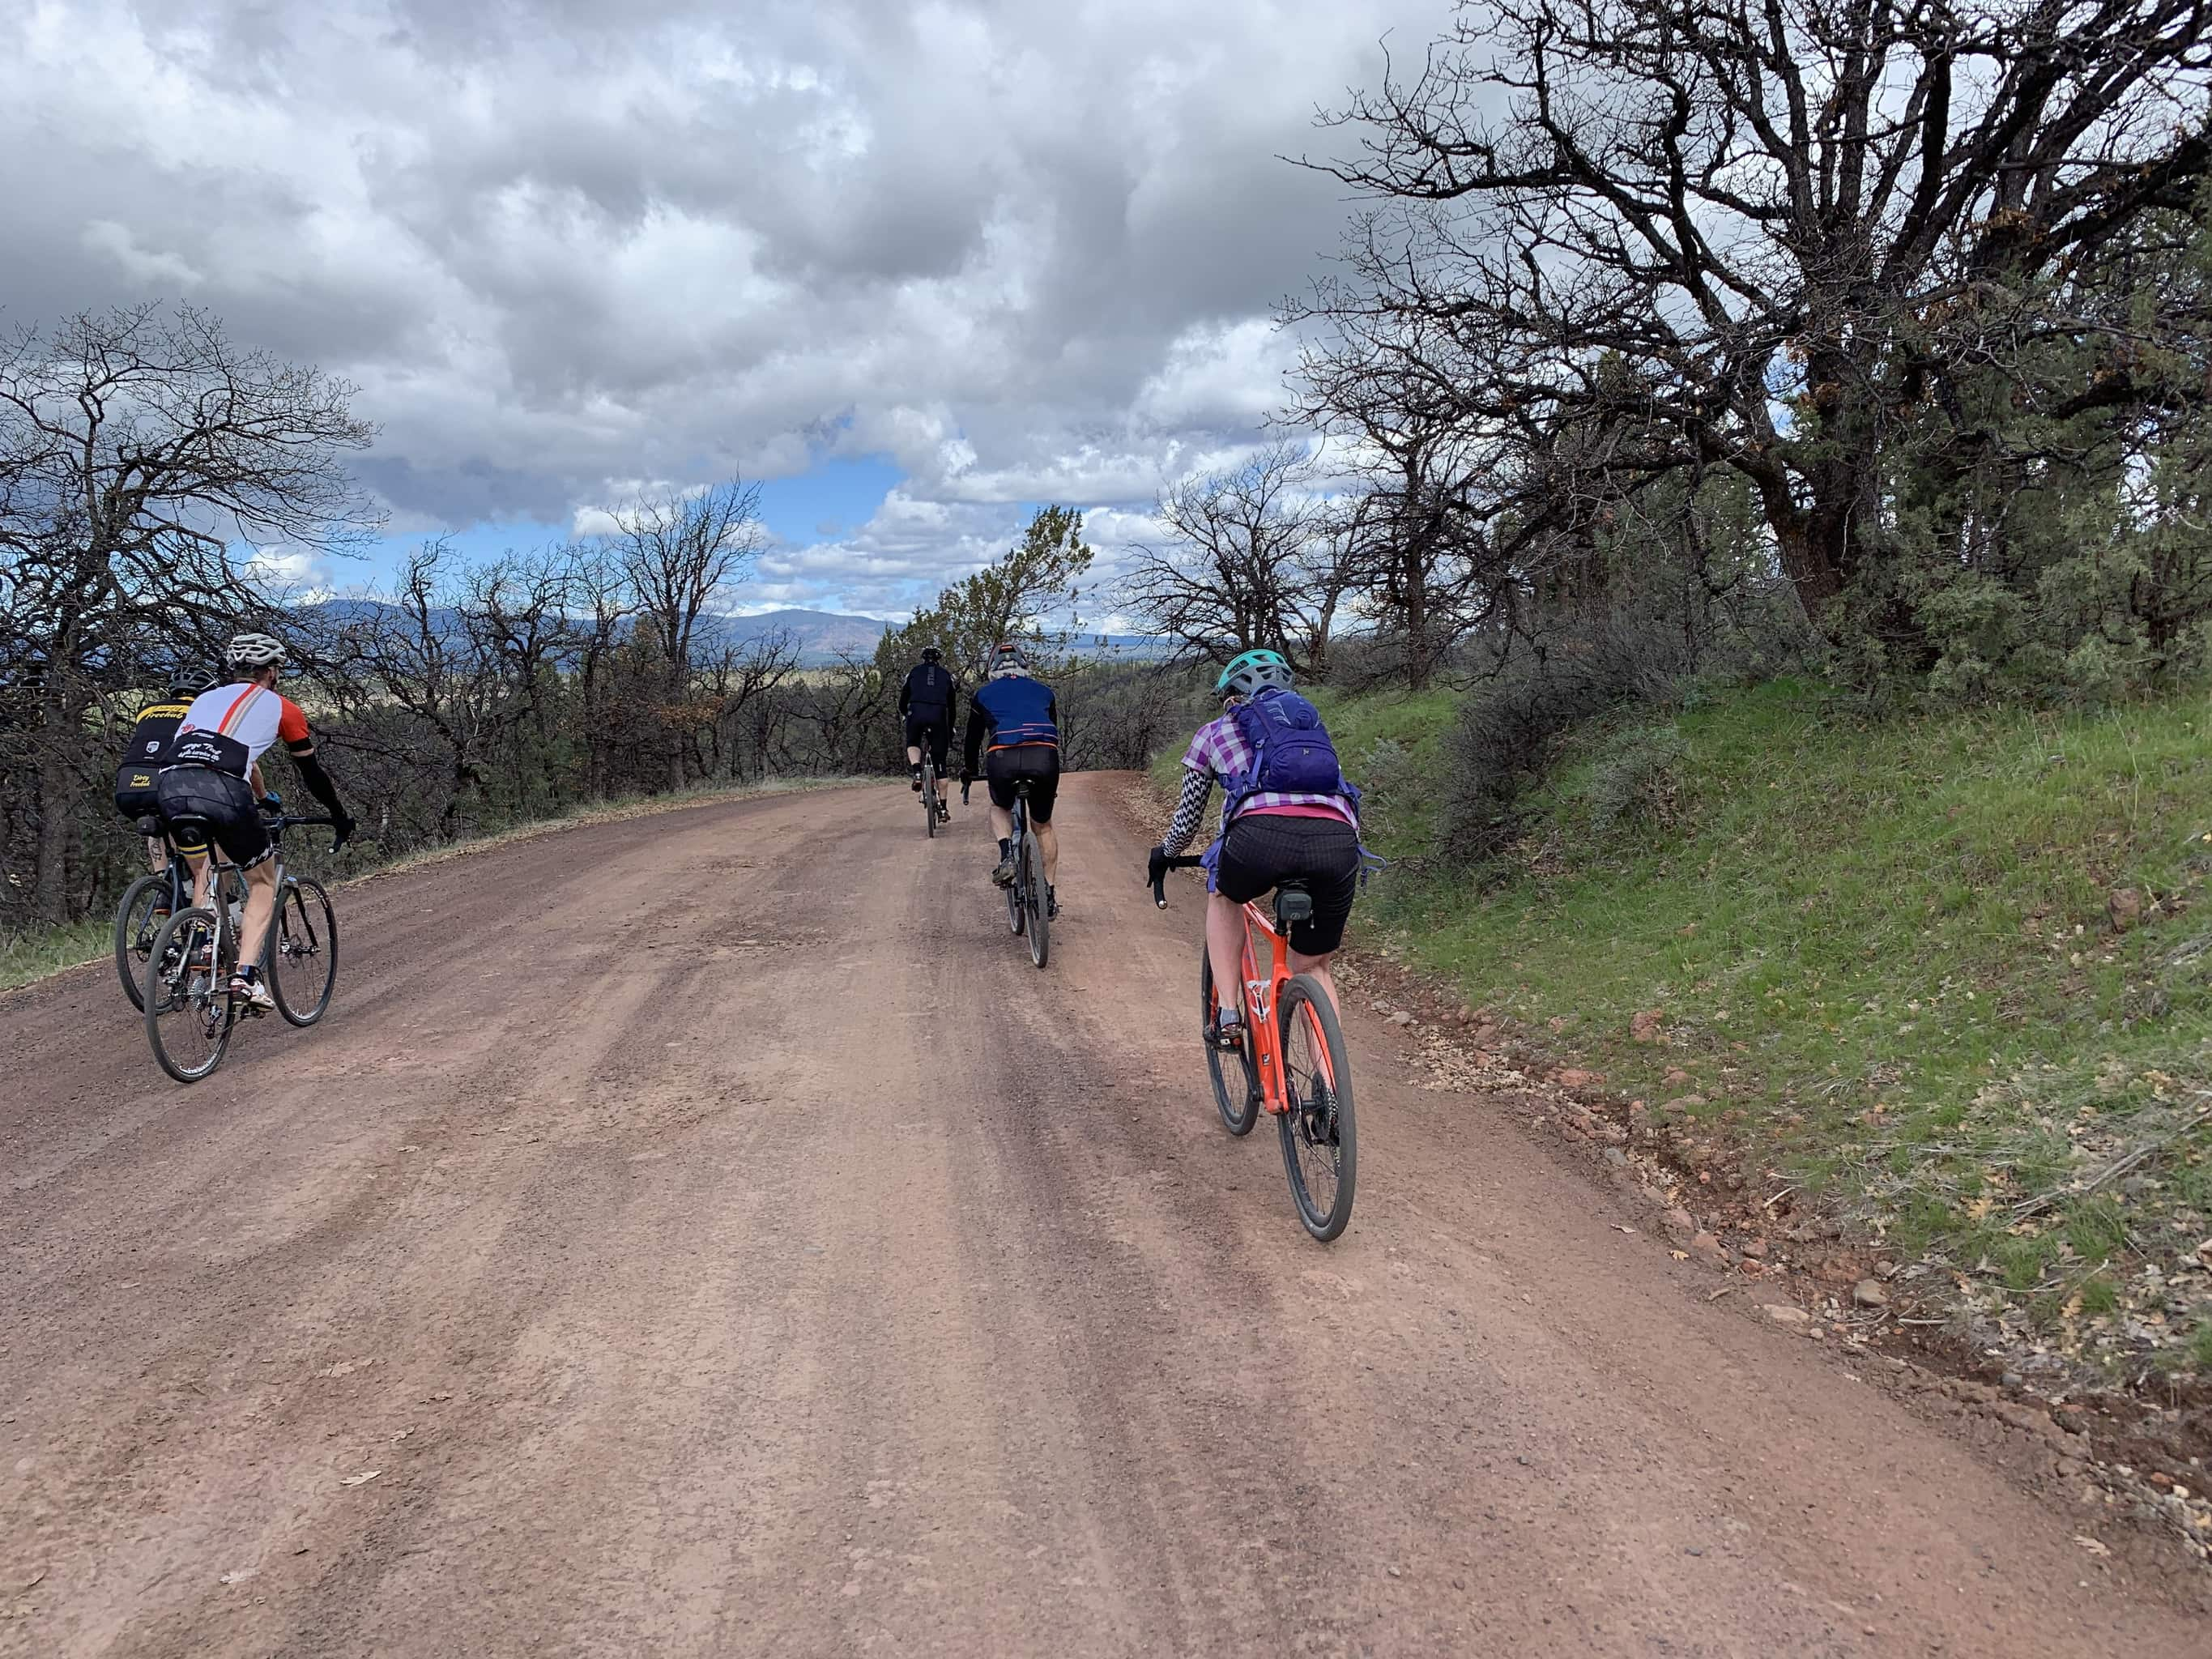 Cyclists on gravel road dropping into White River canyon.